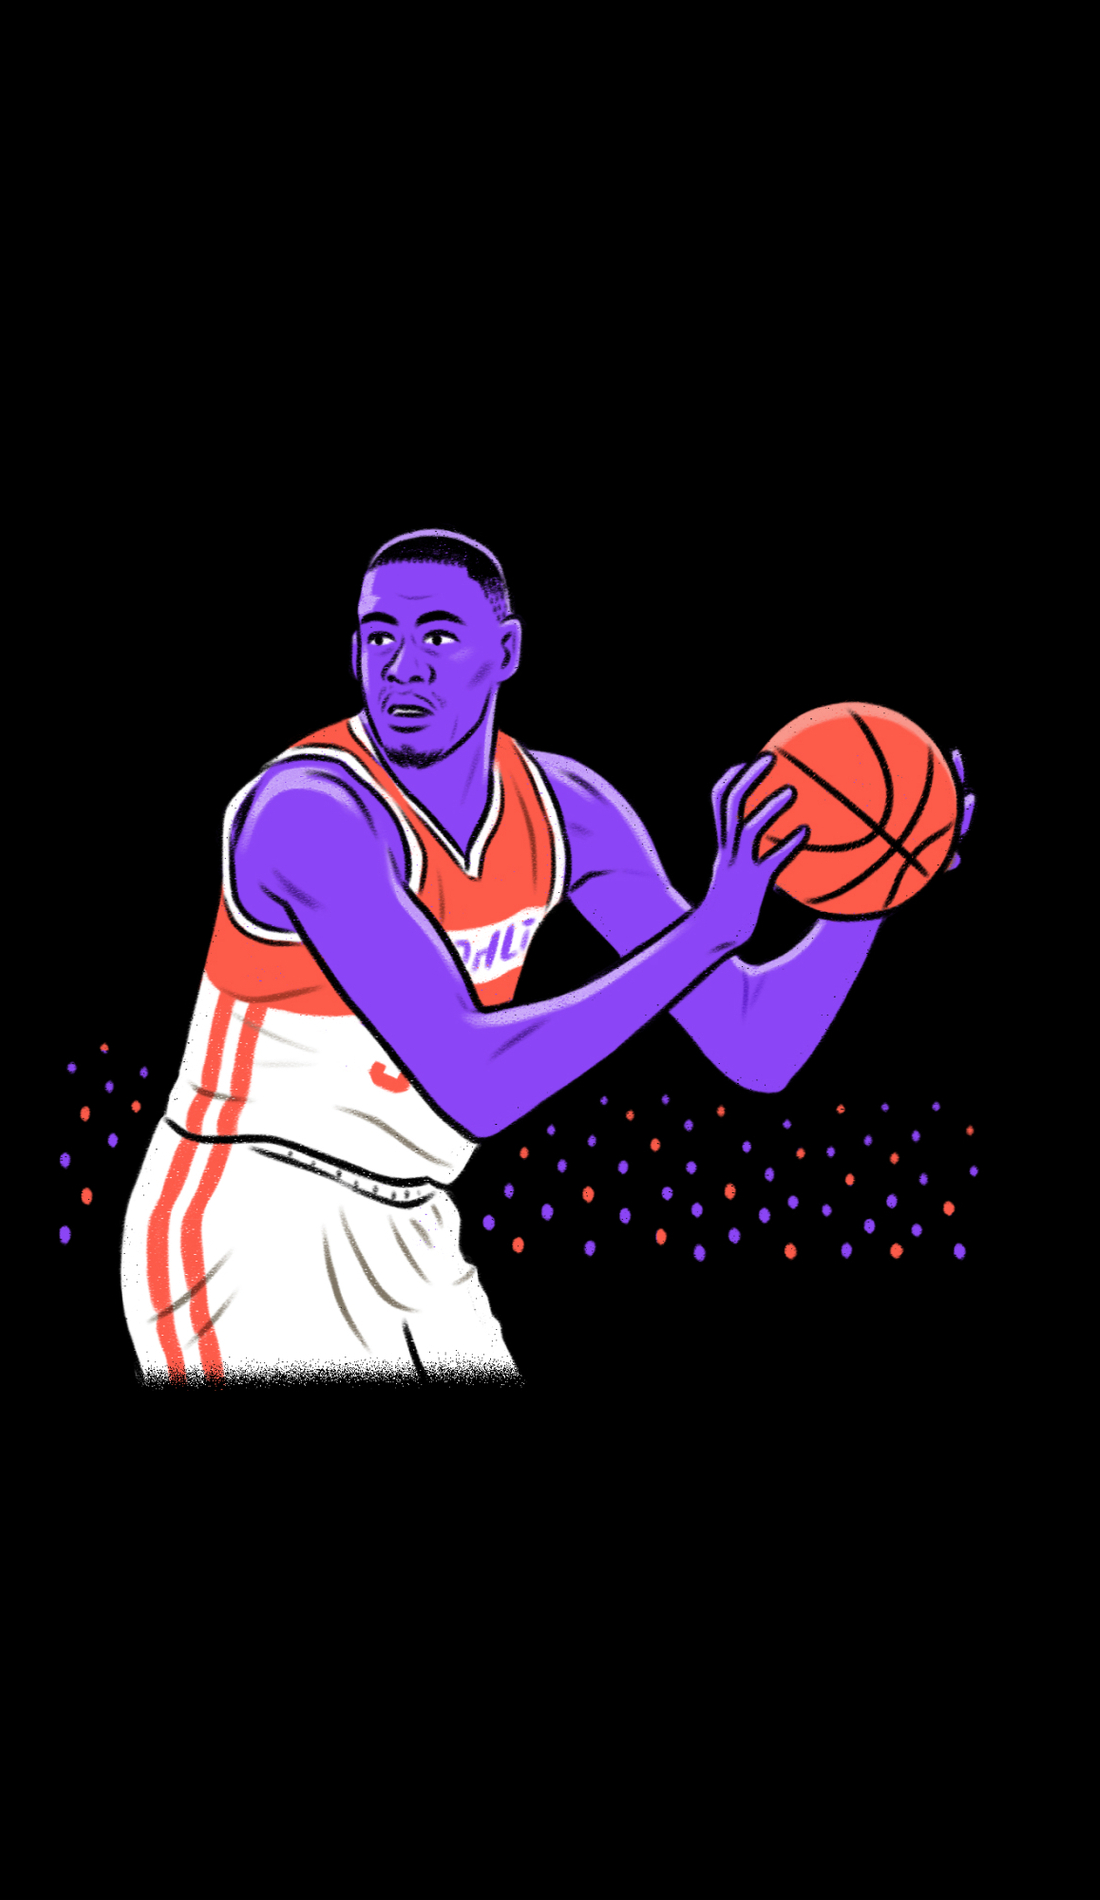 A New Orleans Privateers Basketball live event